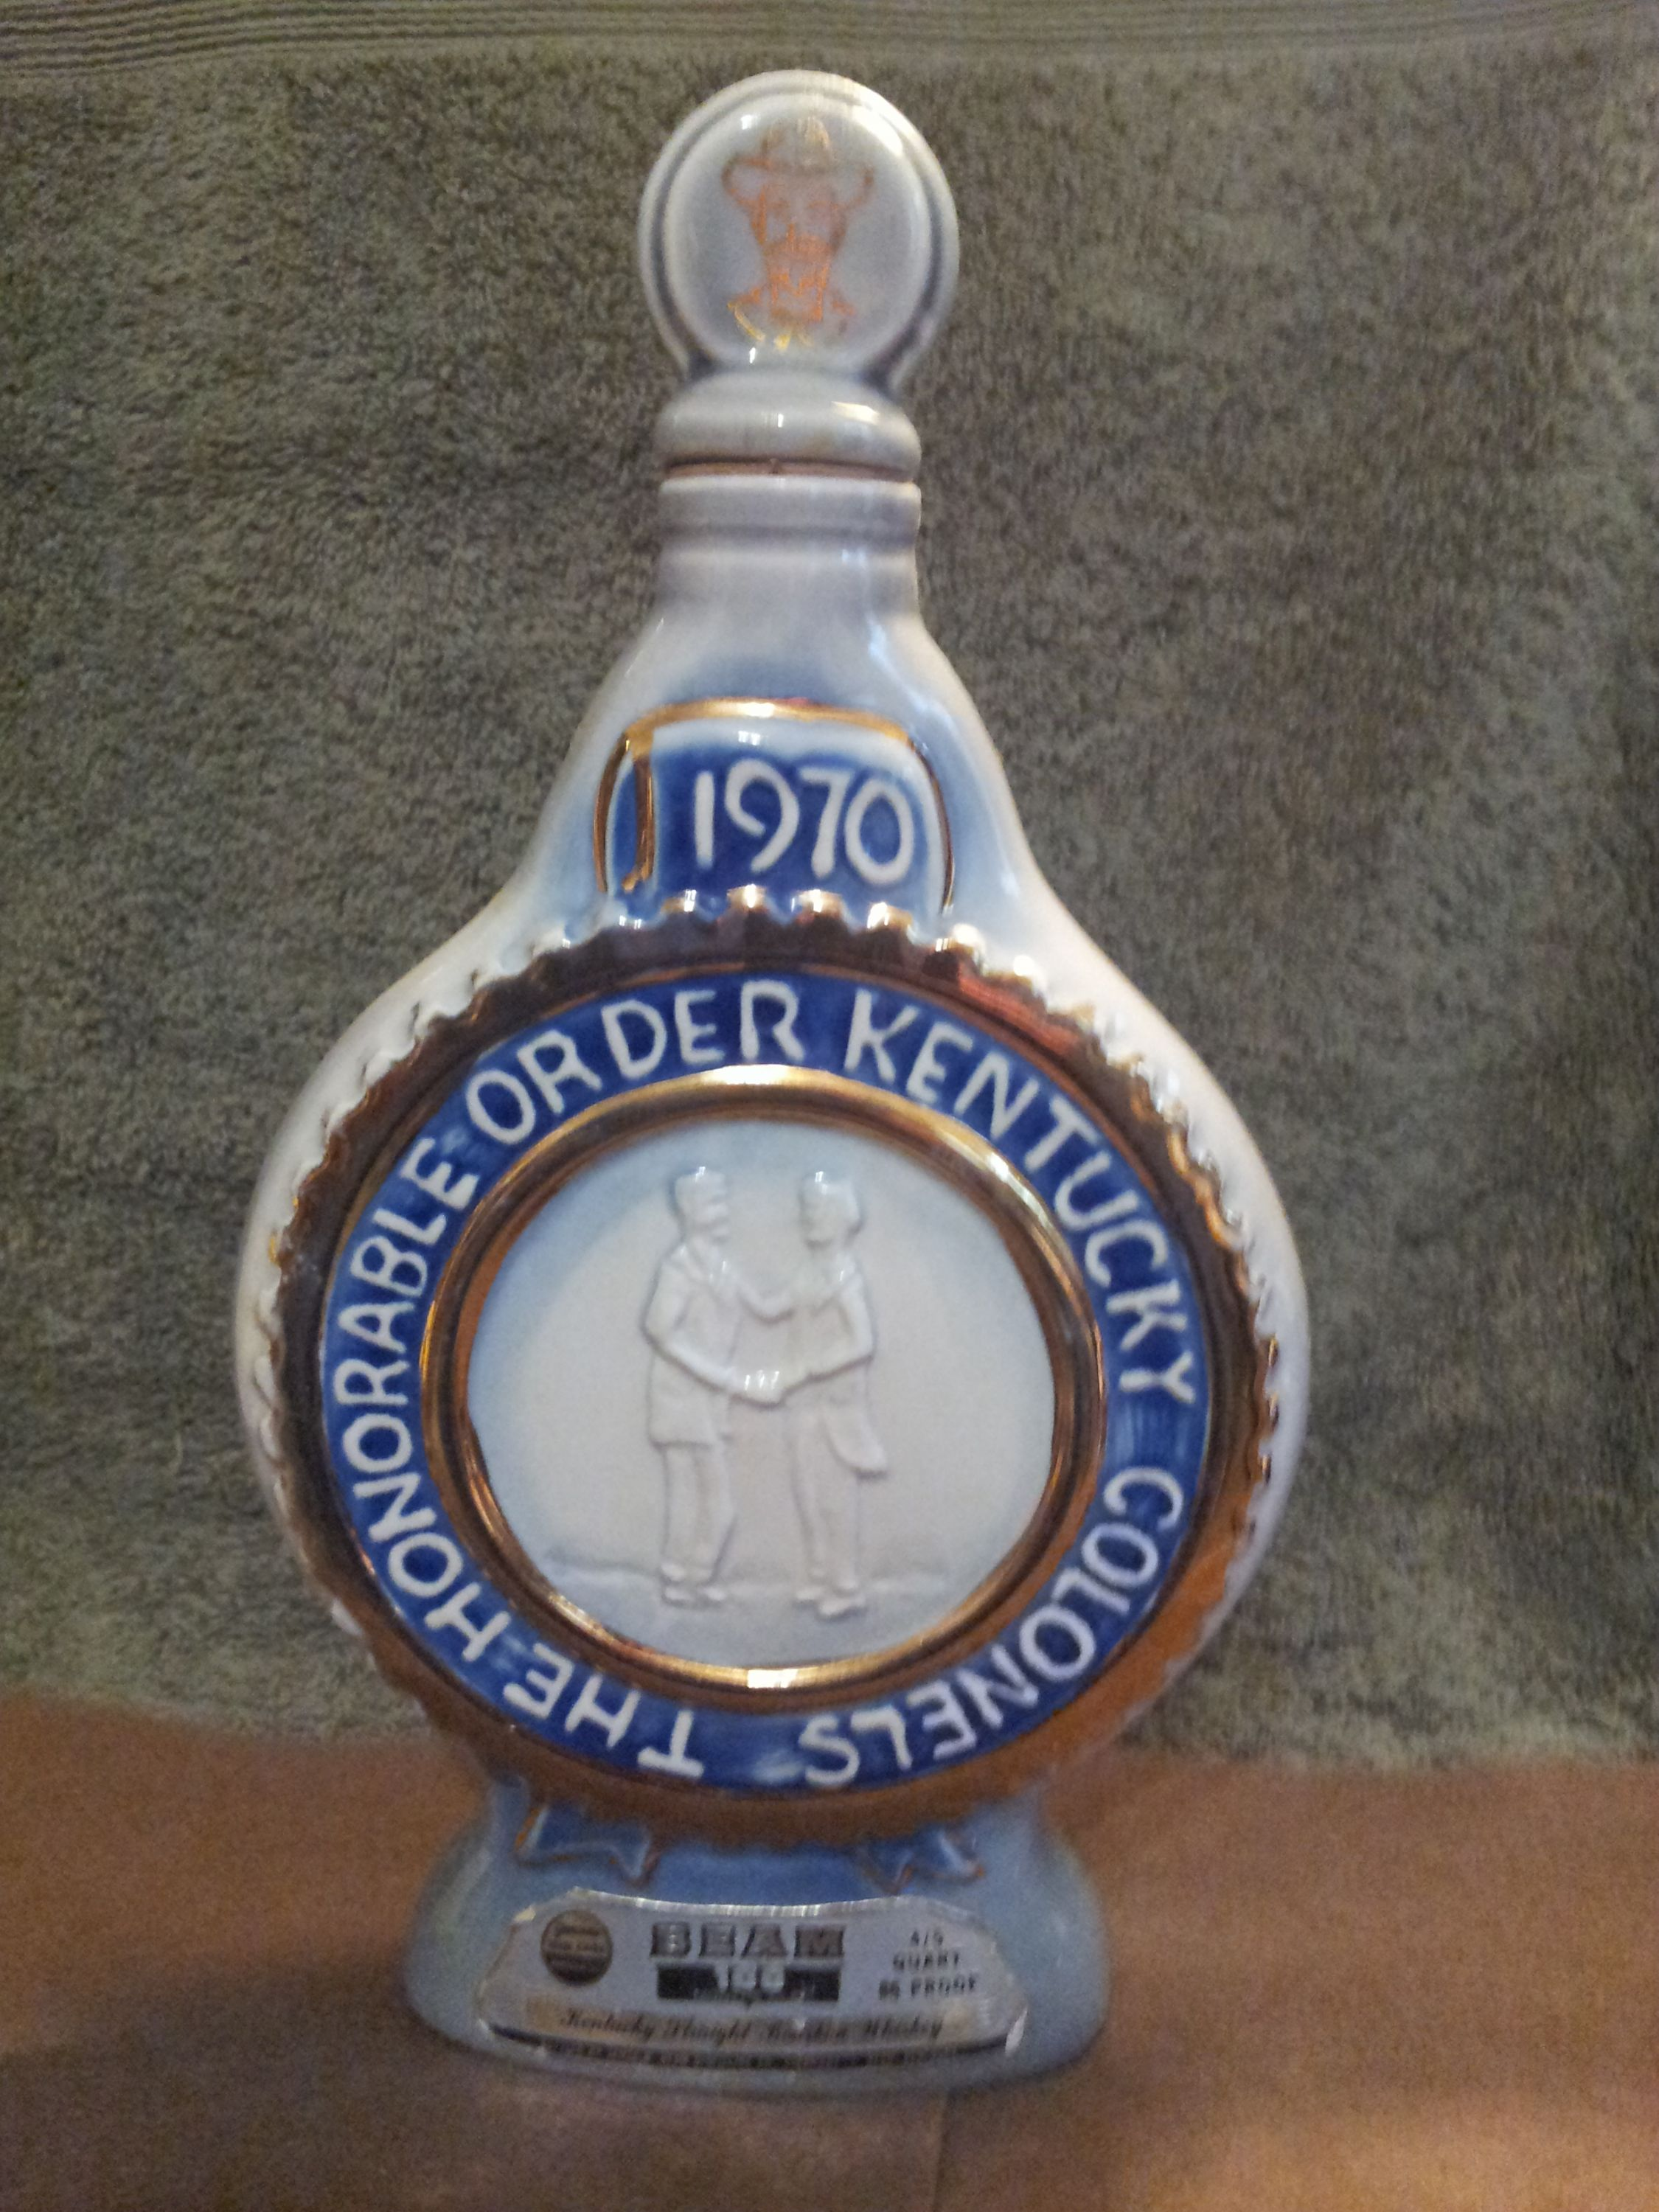 Rare 1970 Jim Beam The Honorable Order Kentucky Colonels